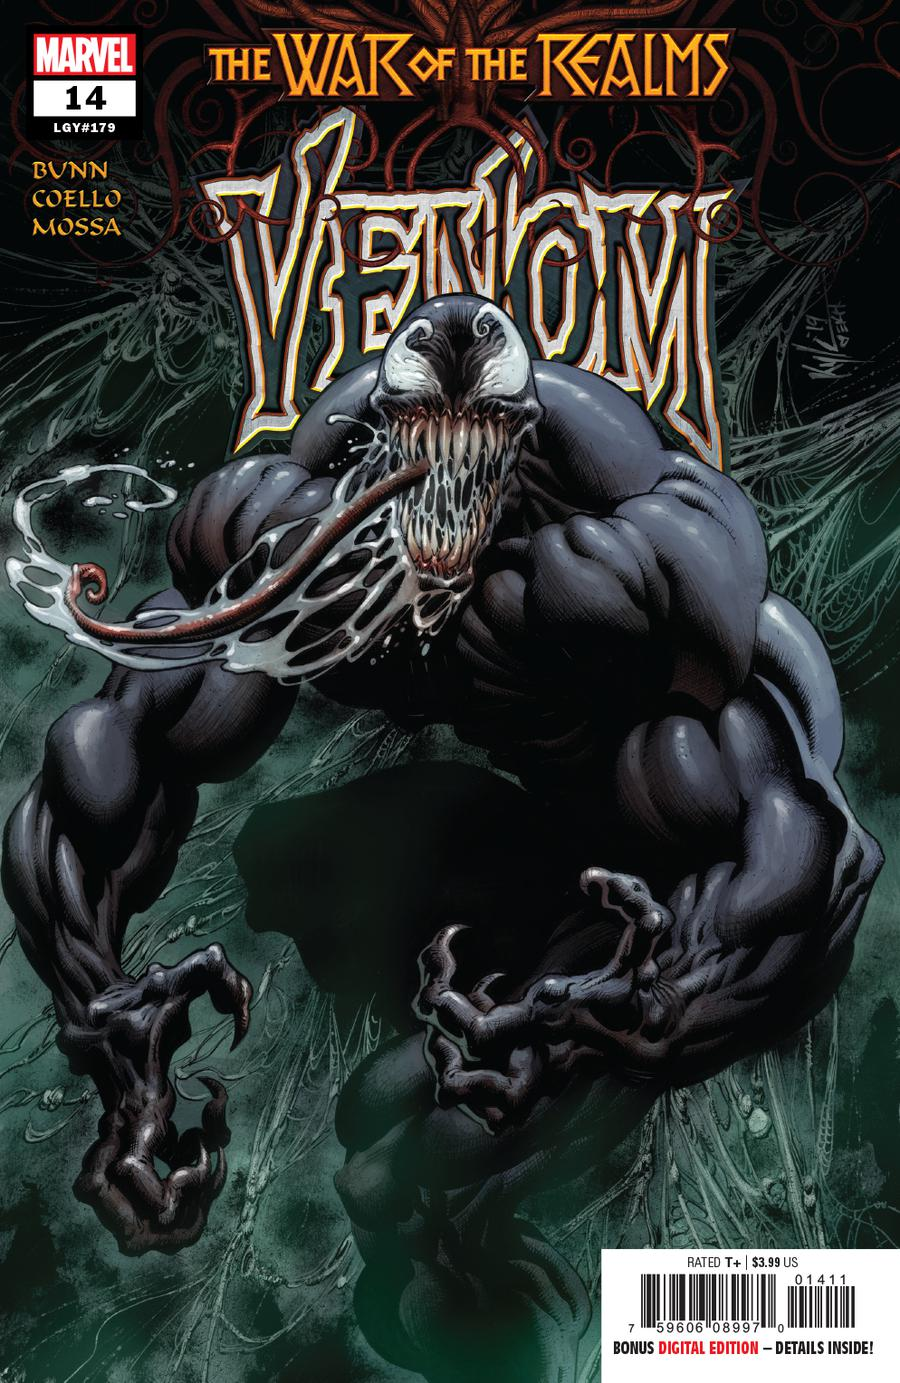 Venom Vol 4 #14 Cover A 1st Ptg Regular Kyle Hotz Cover (War Of The Realms Tie-In)